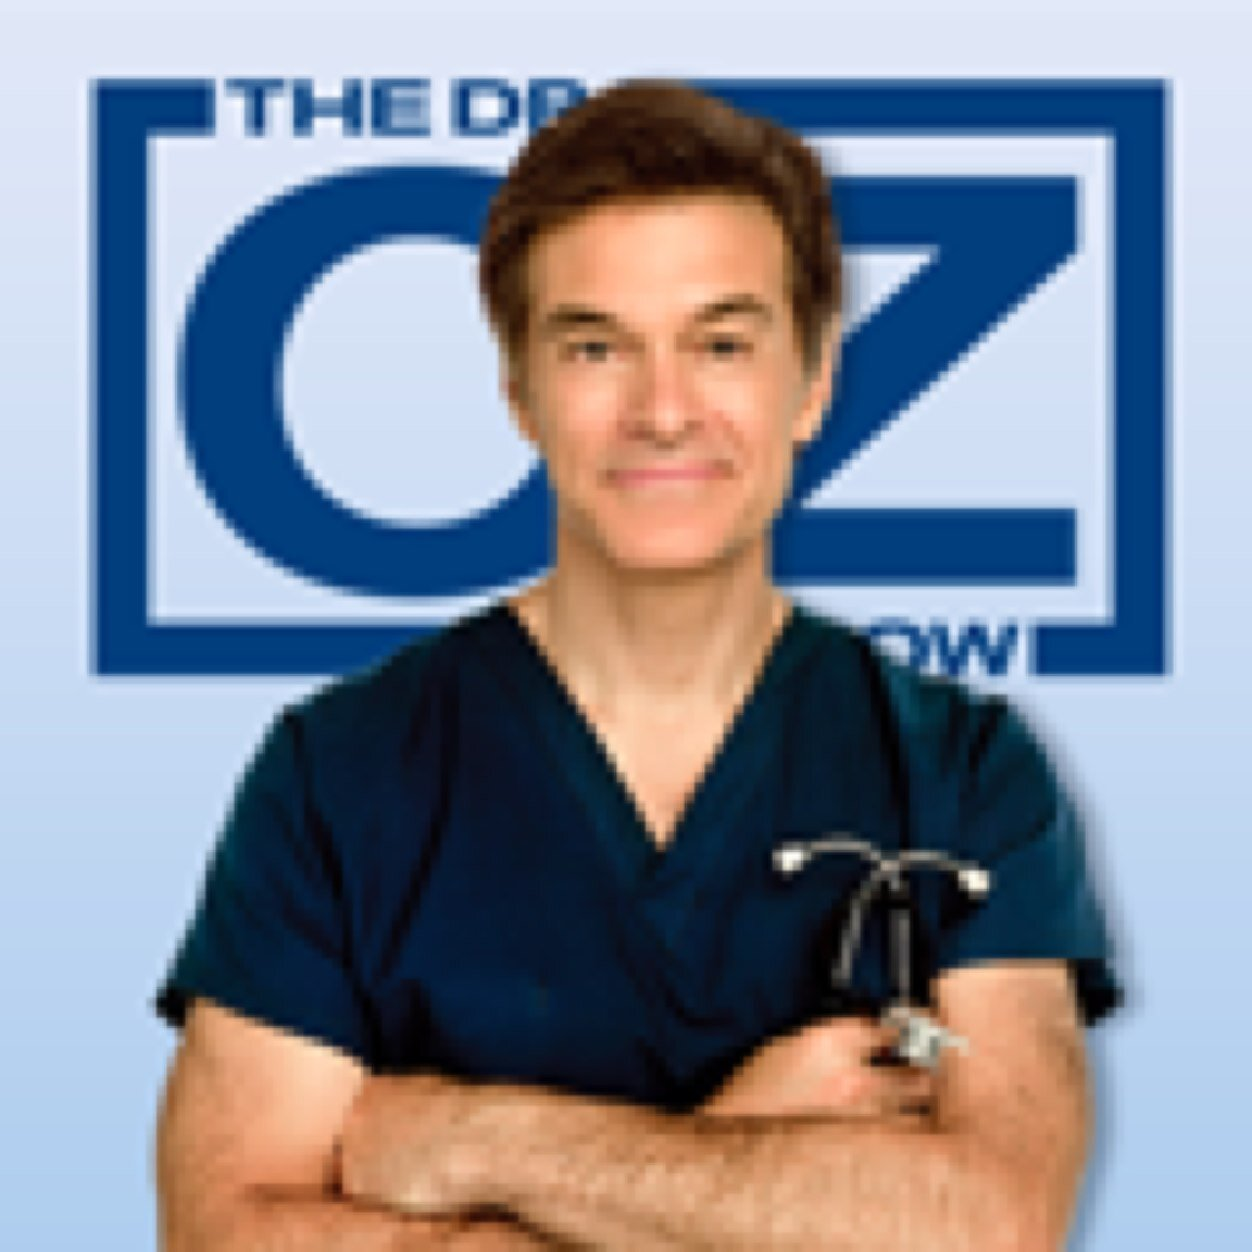 Dr oz italiano